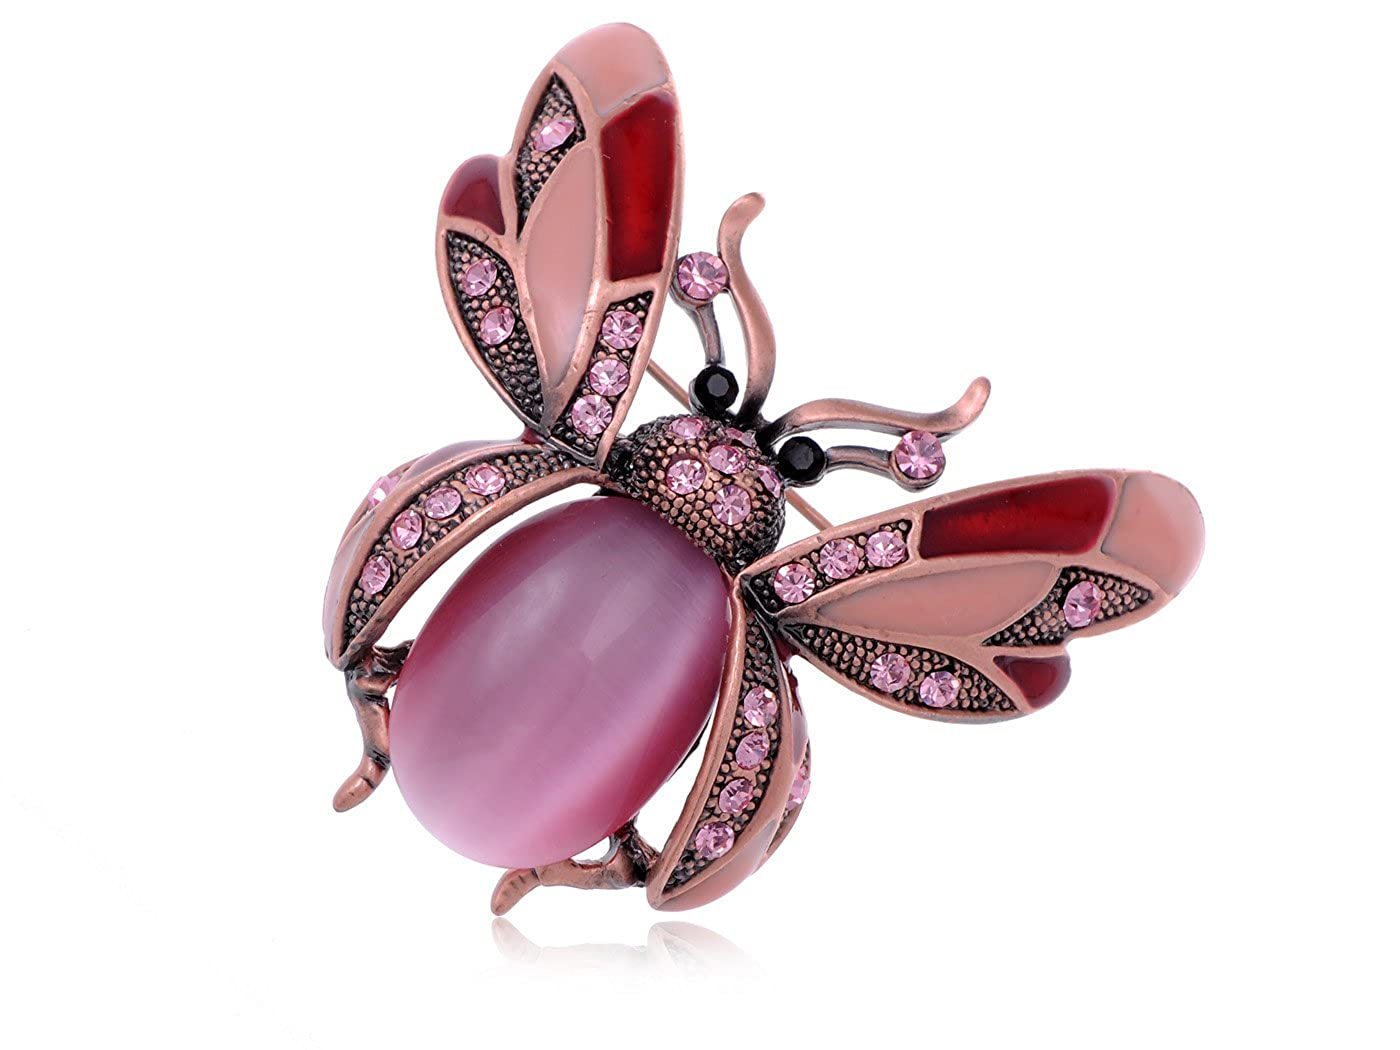 Alilang Crystal Rhinestone Ladybug Fly Insect Fashion Jewelry Brooch Pin B0123